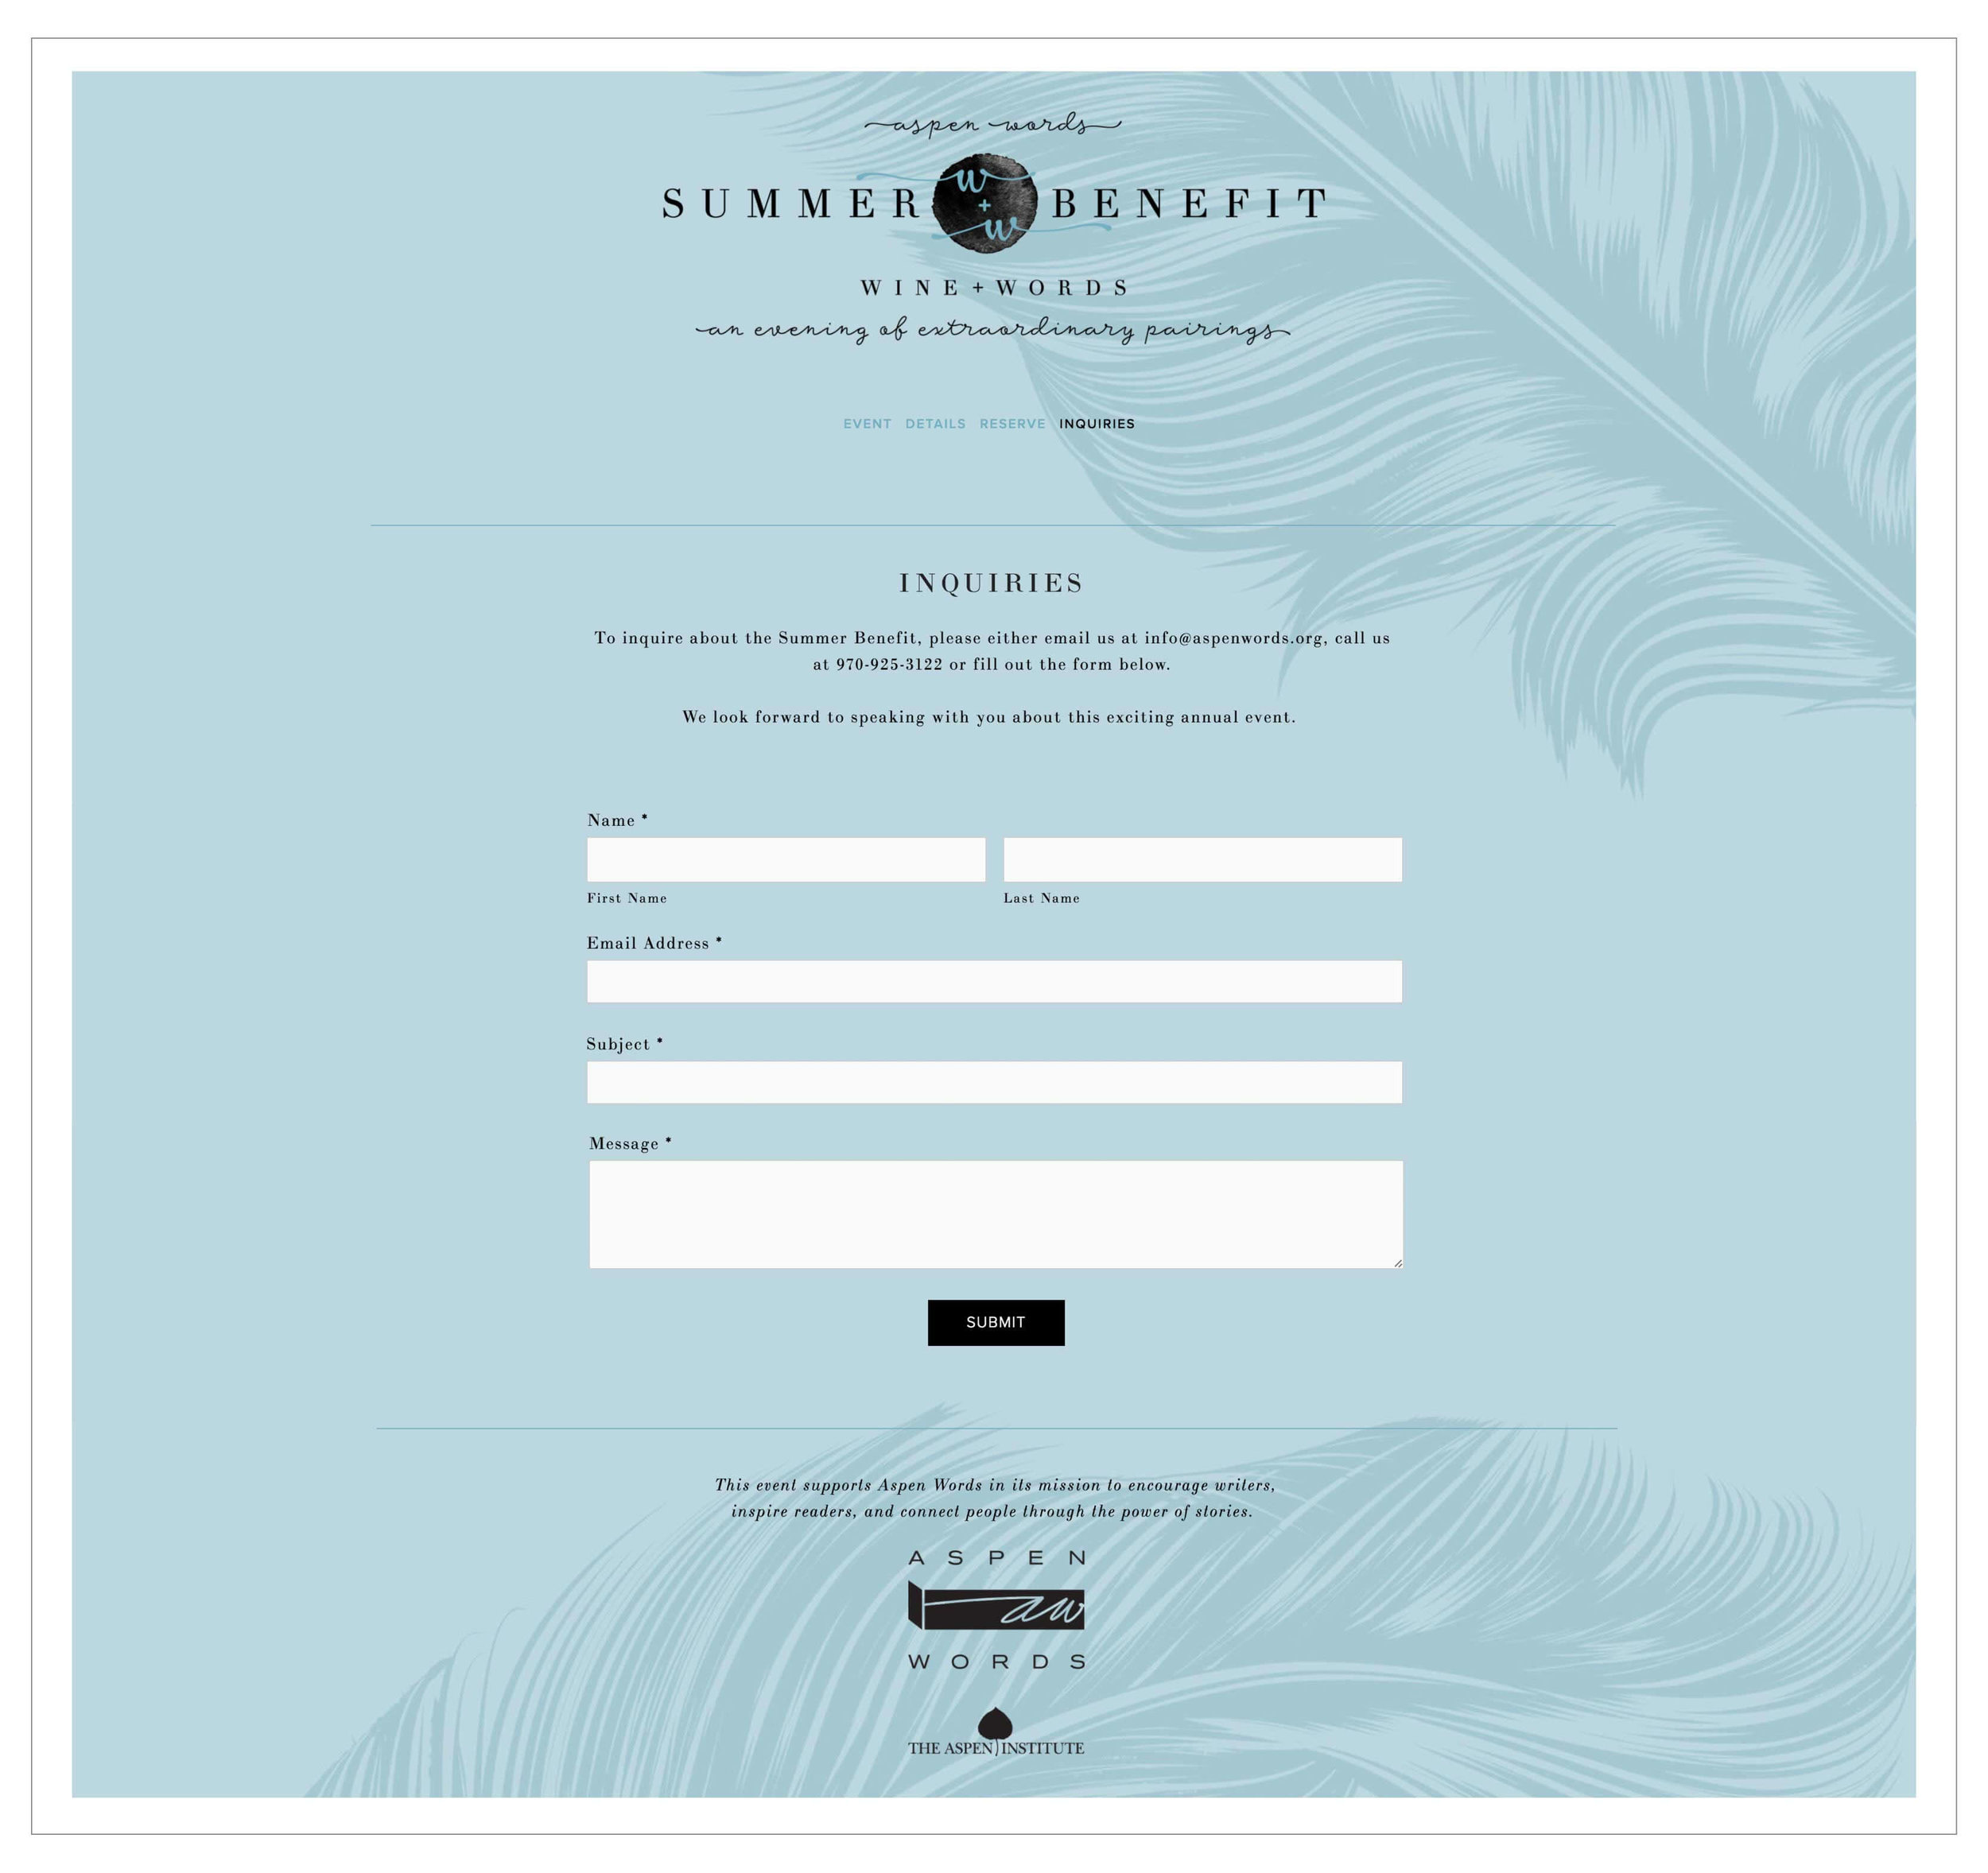 Summer Benefit Squarespace website design by the Qurious Effect